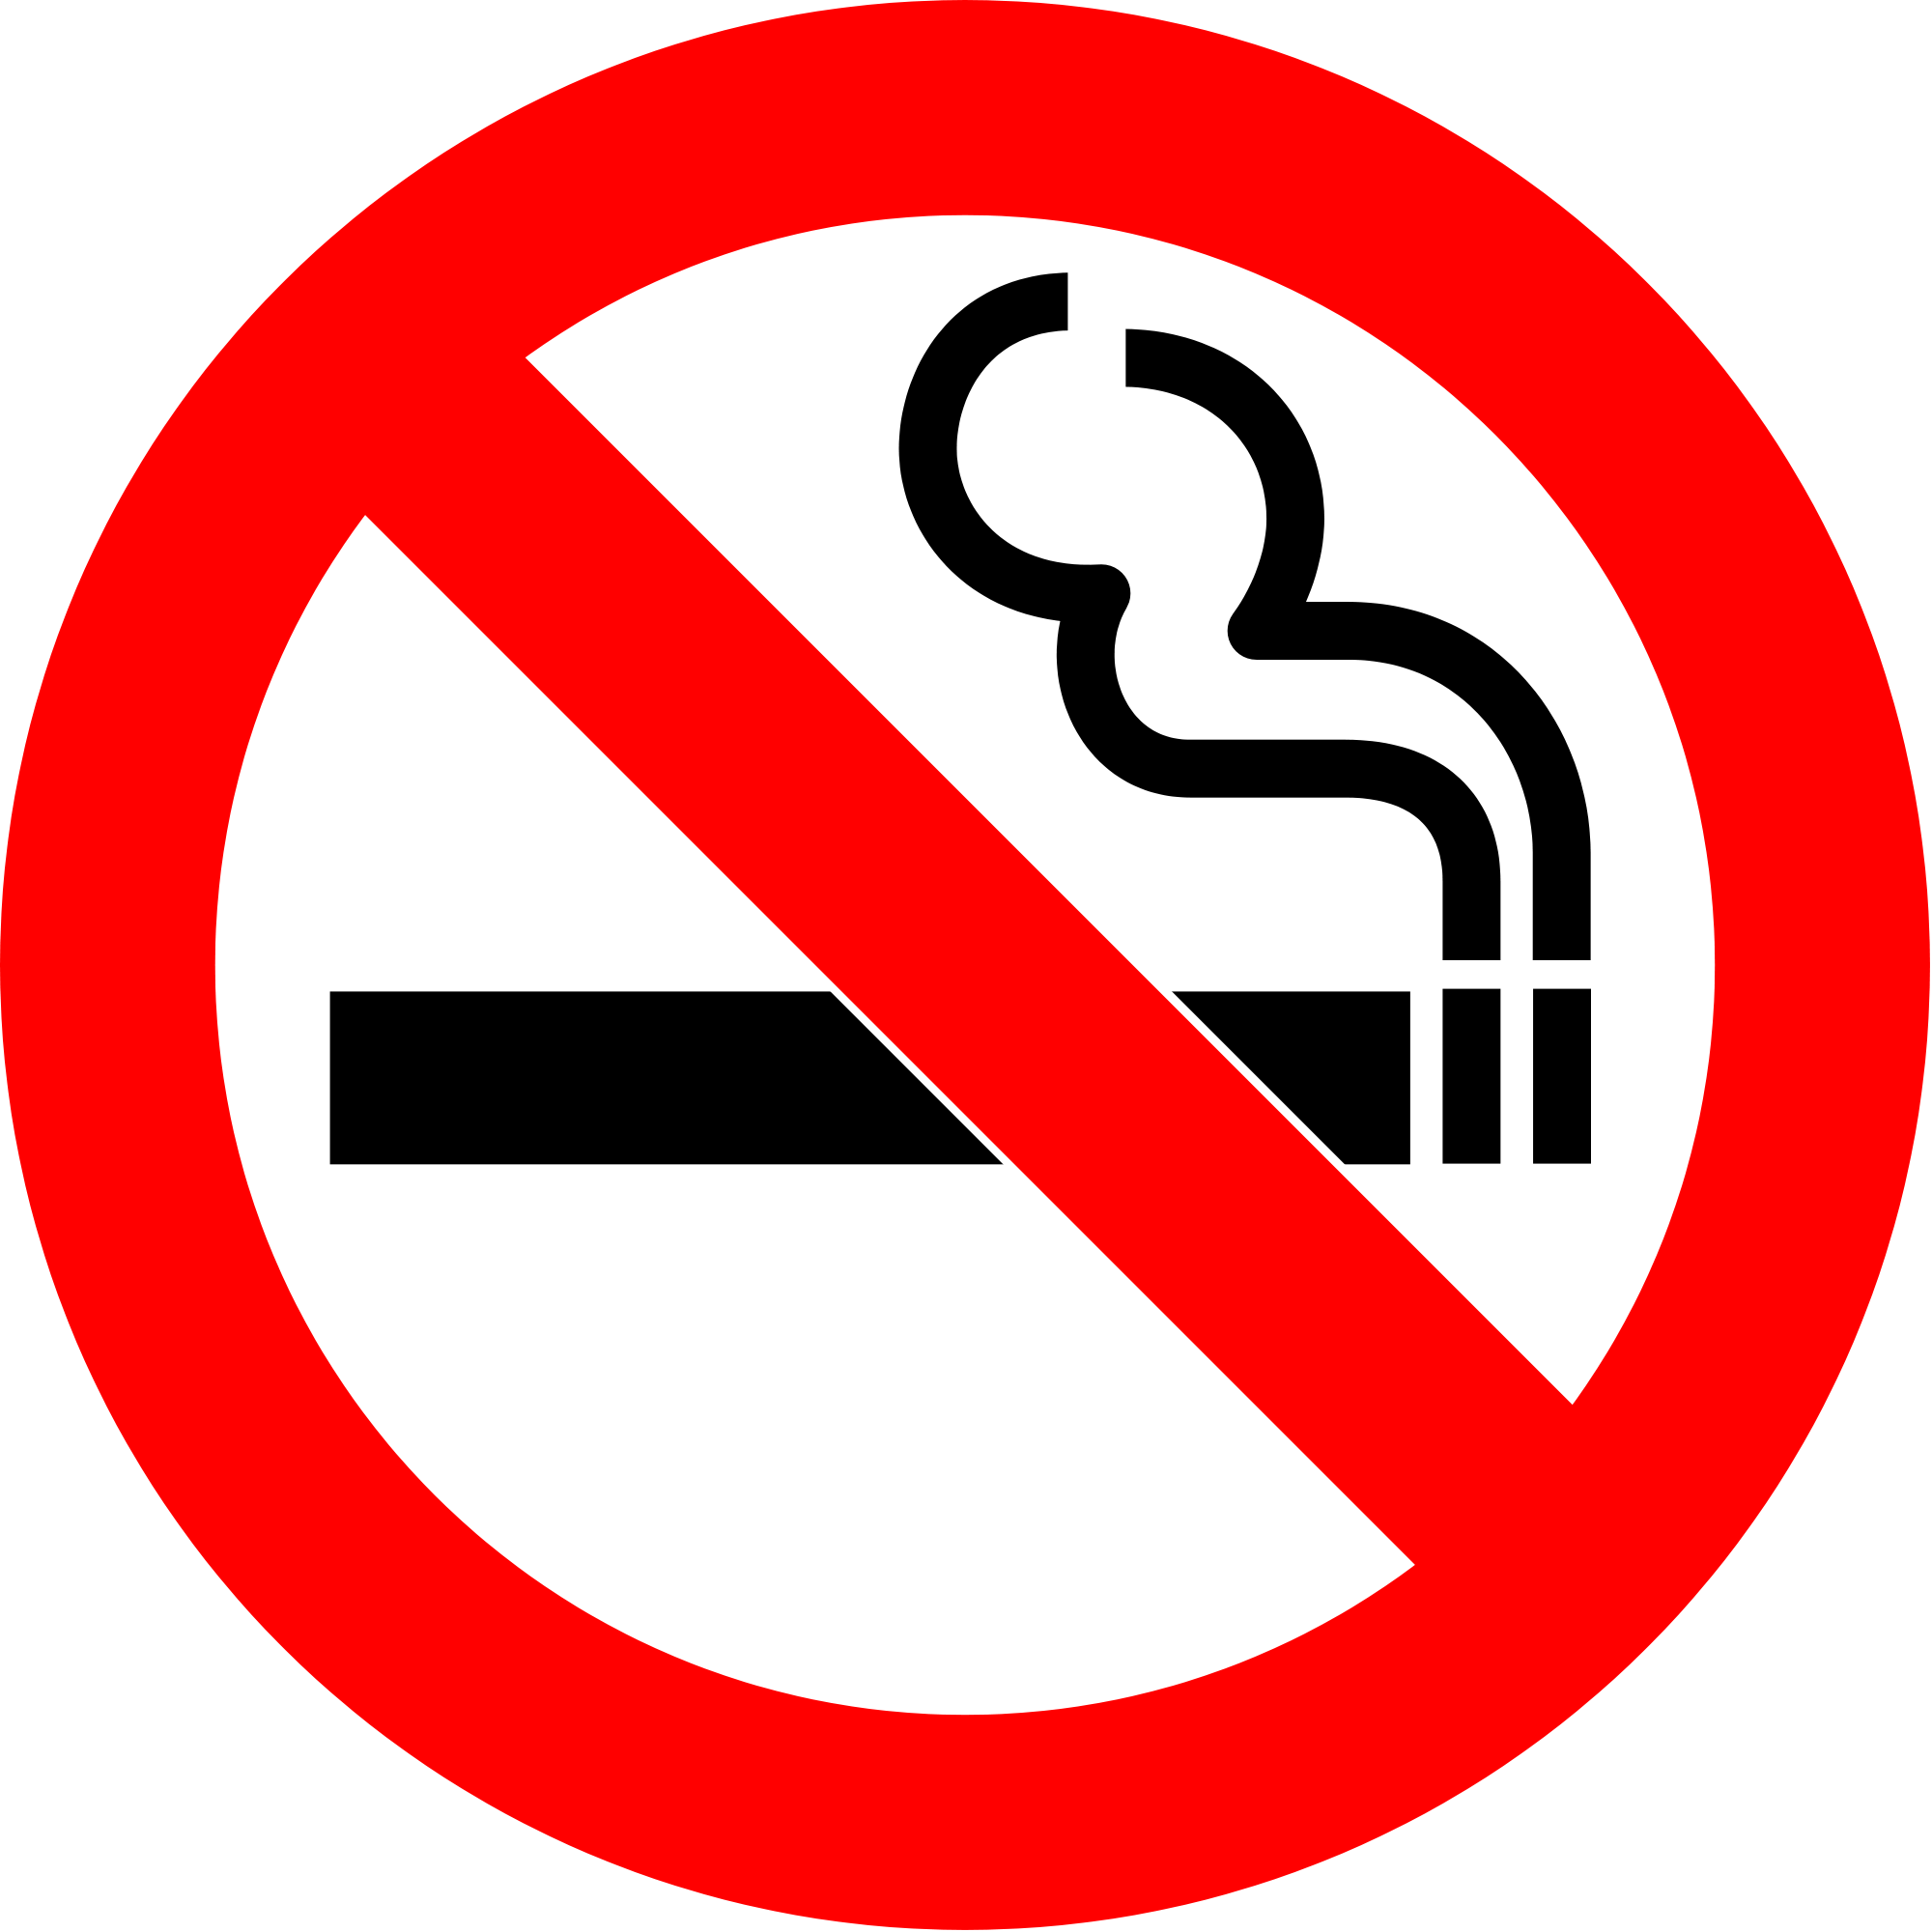 smoking survey to determine if campus community is ready to kick the